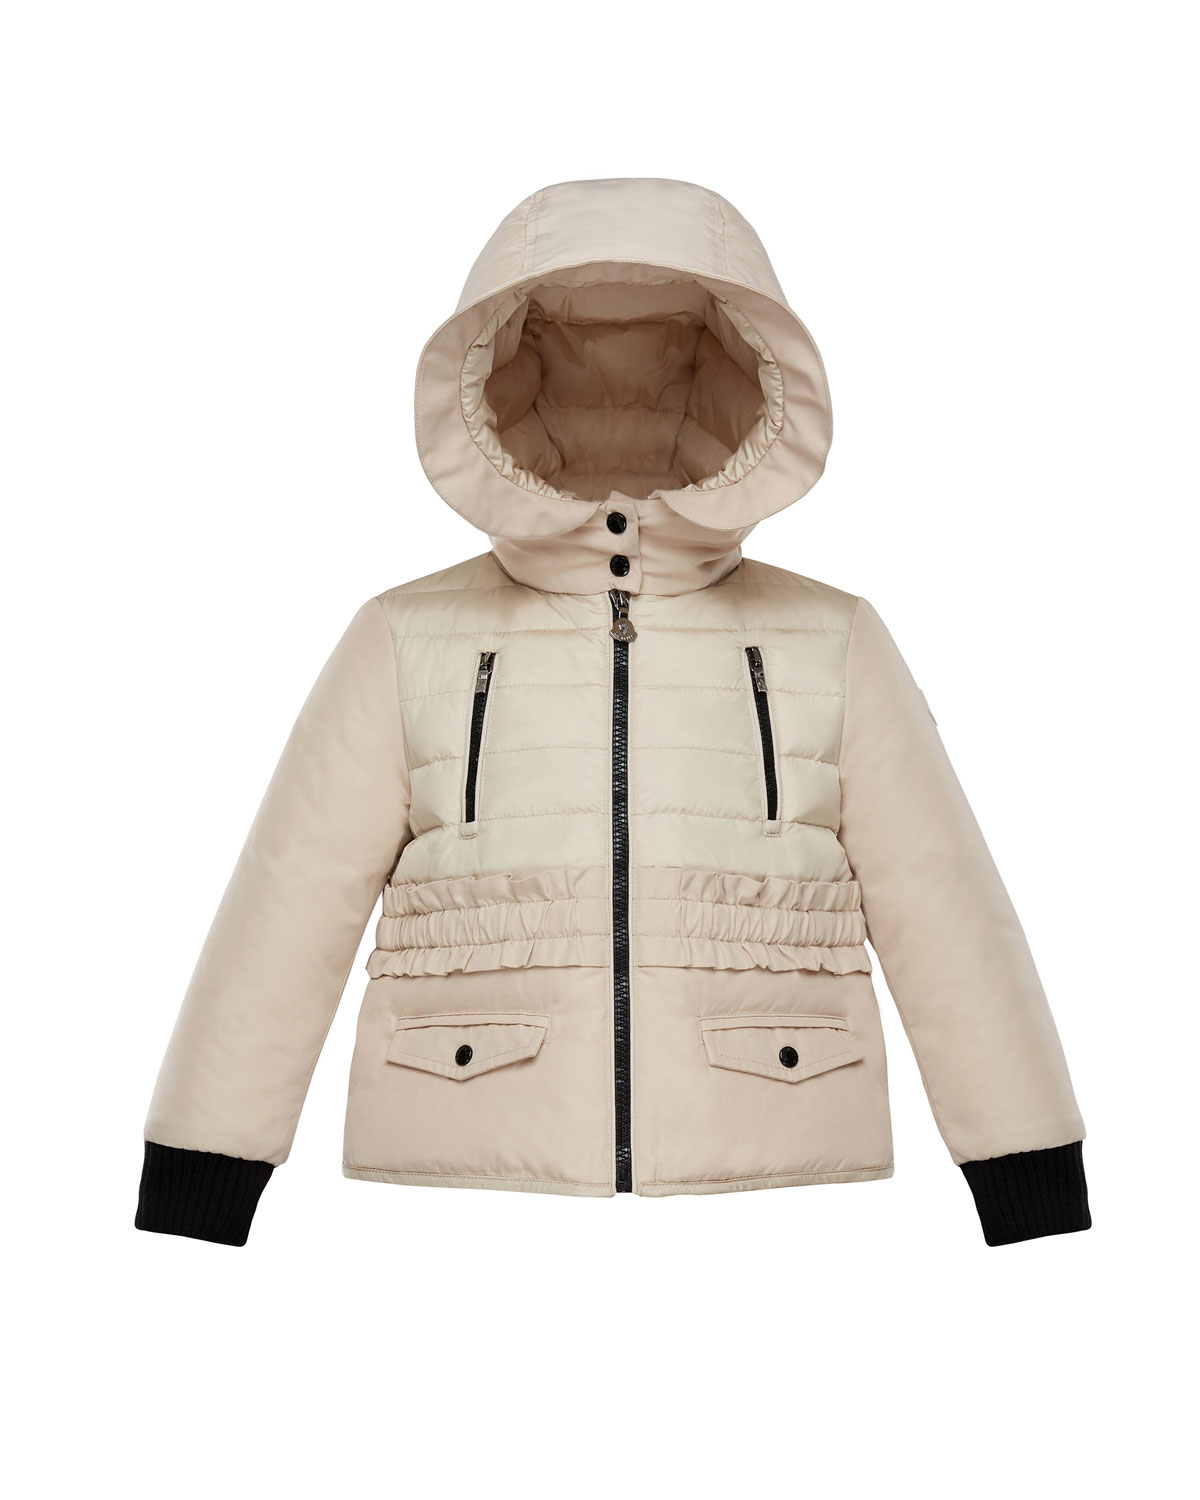 Adonise Two-Tone Ruffle-Trim Hooded Jacket, Size 4-6